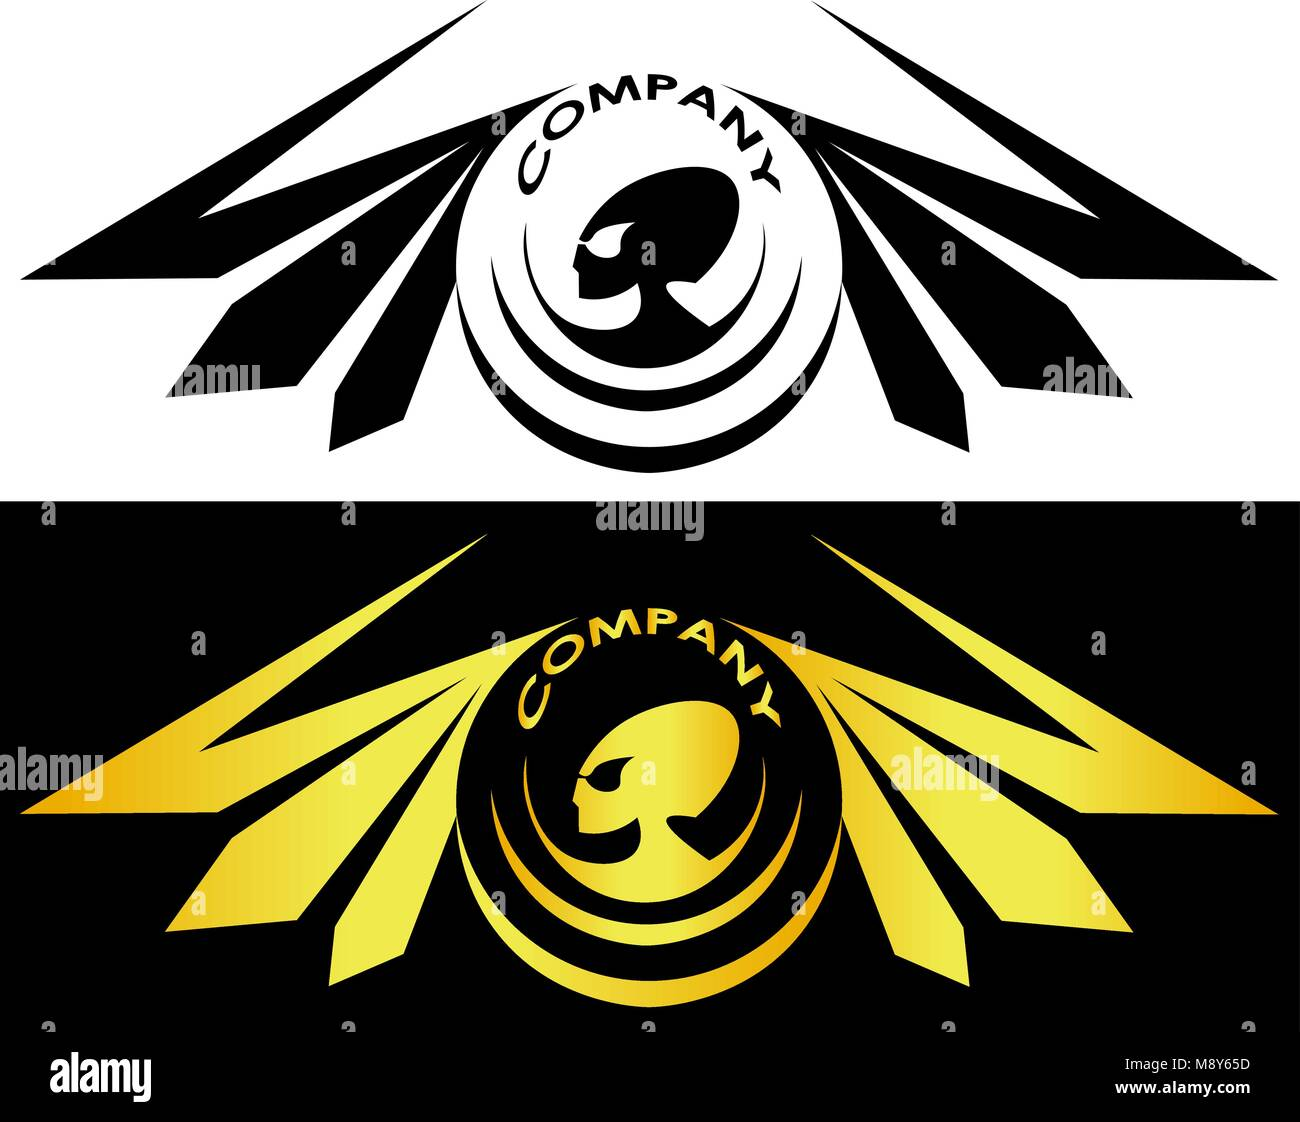 Aliens Surrounded By Wings And Inscription Alien Logo Stock